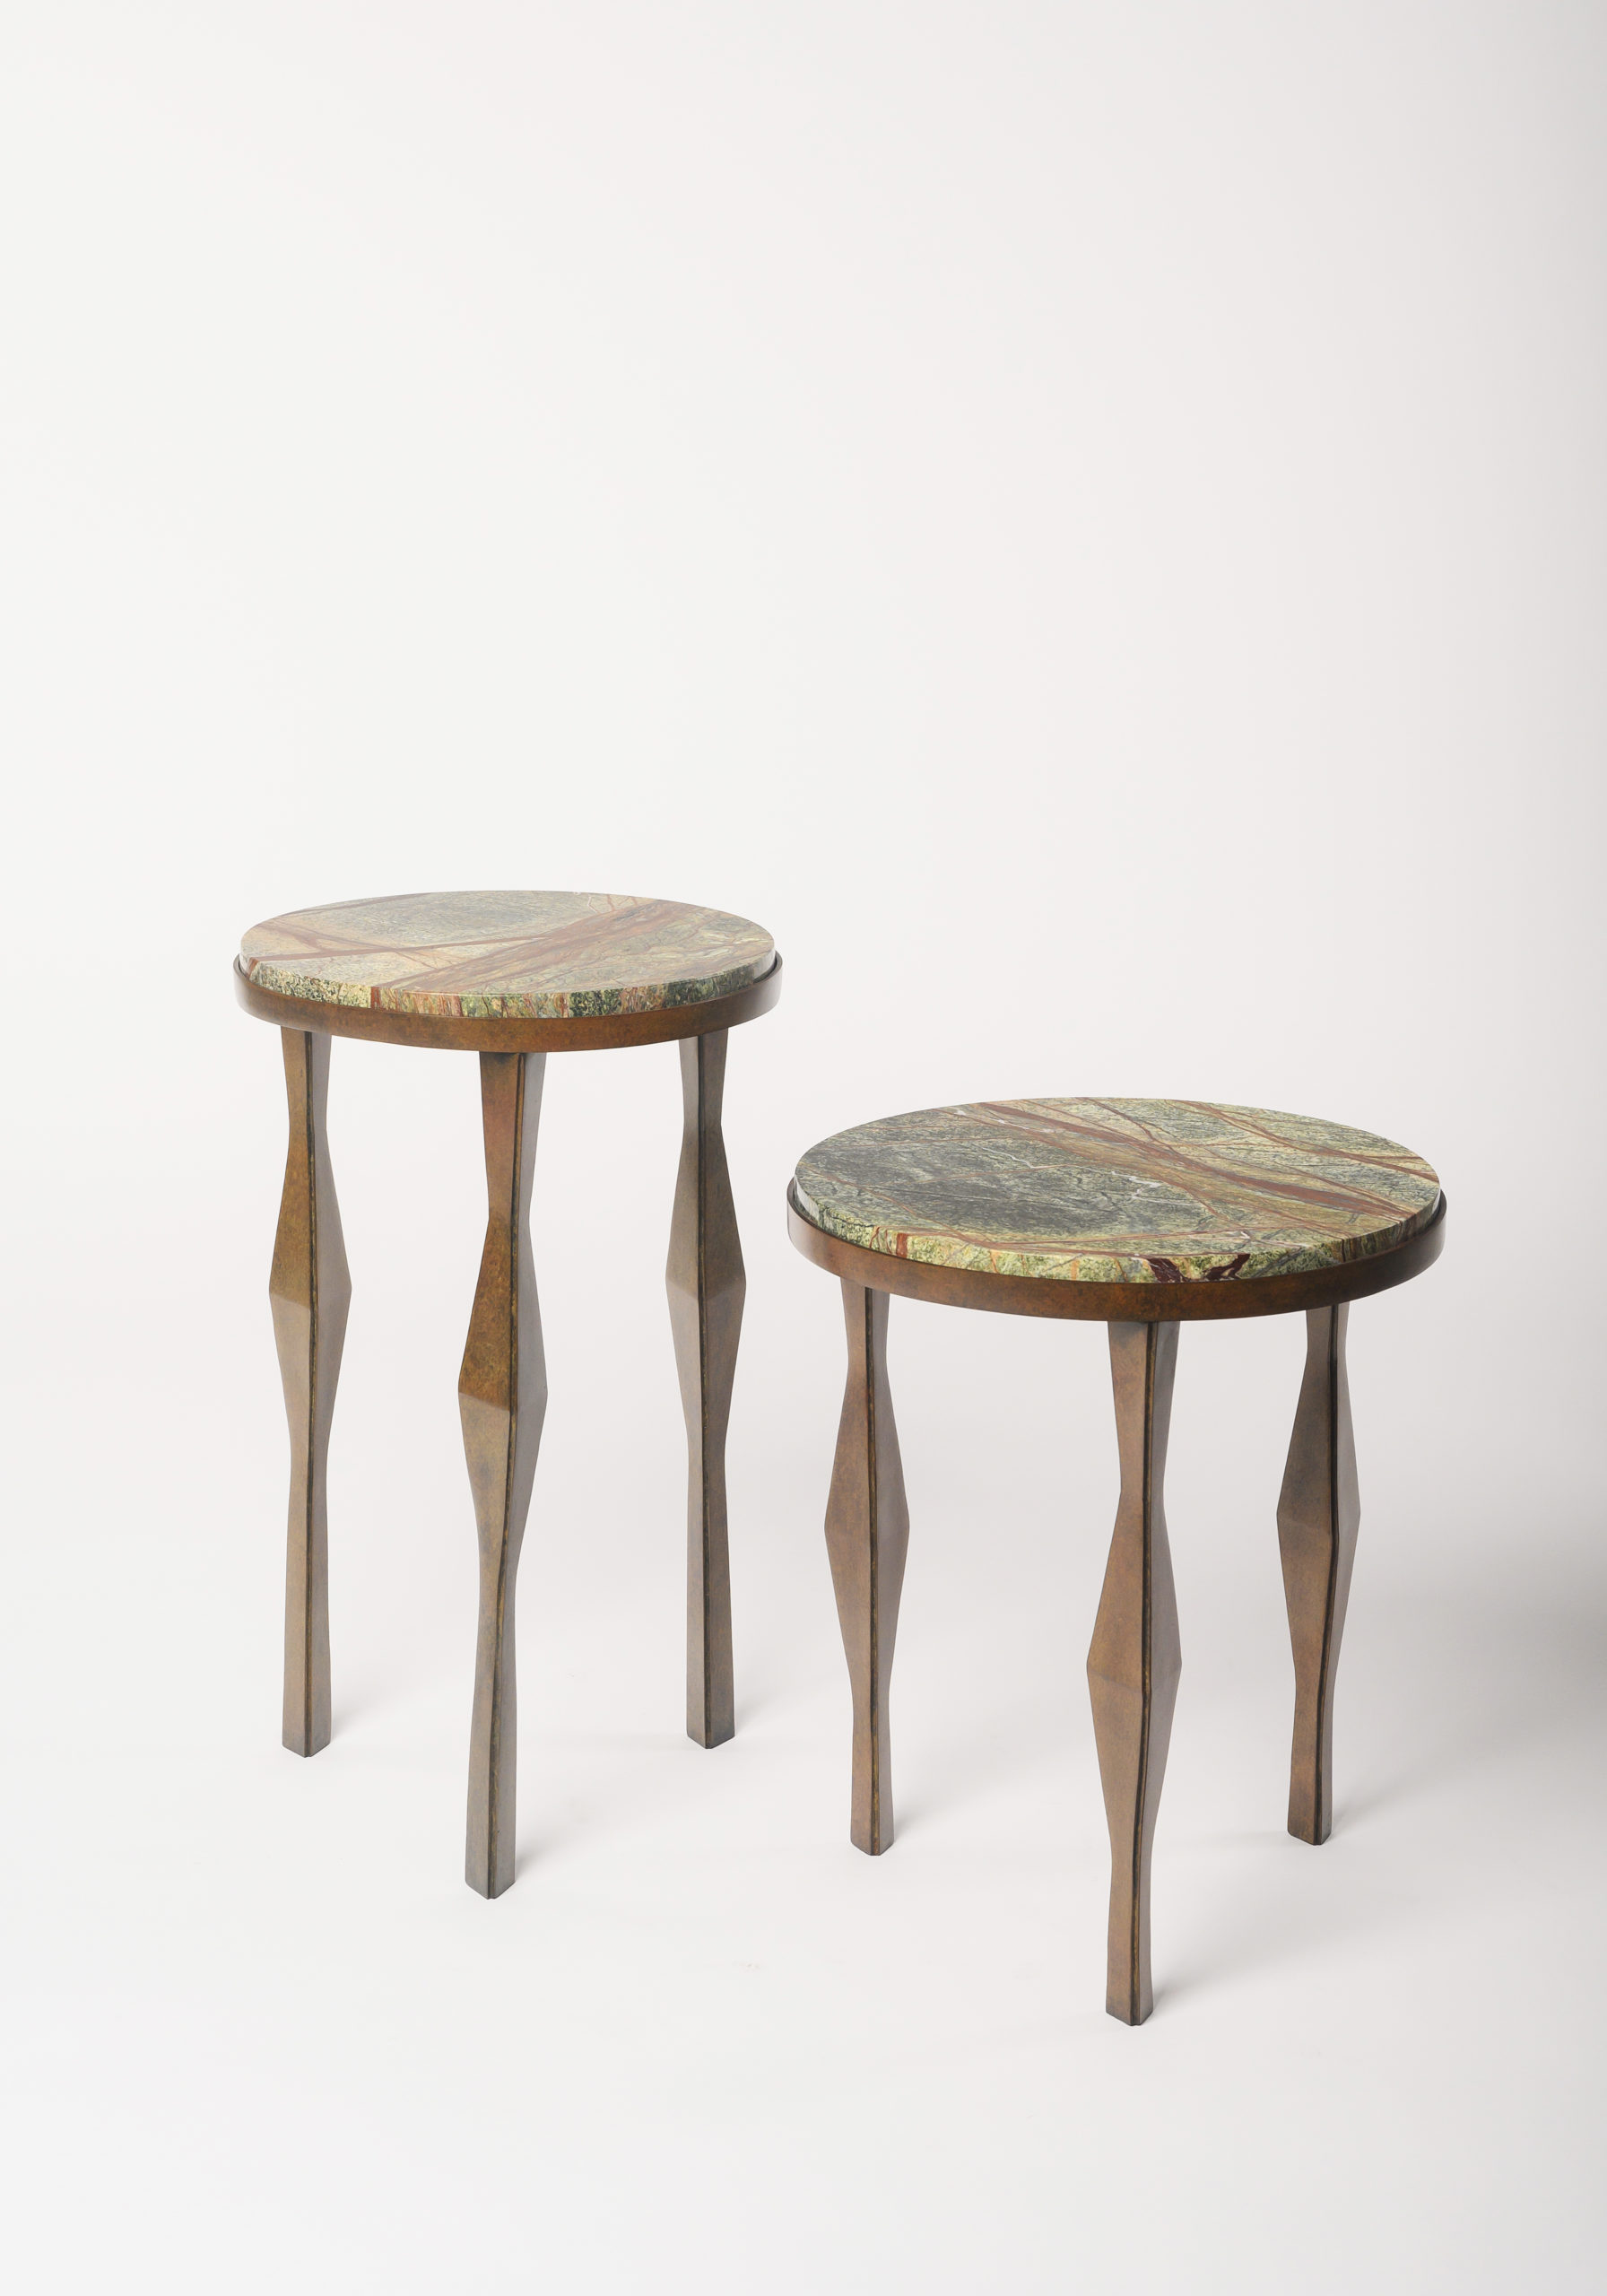 NYDC_WNWN_products_david_sutherland_Arthur_side_table_BEE_4946